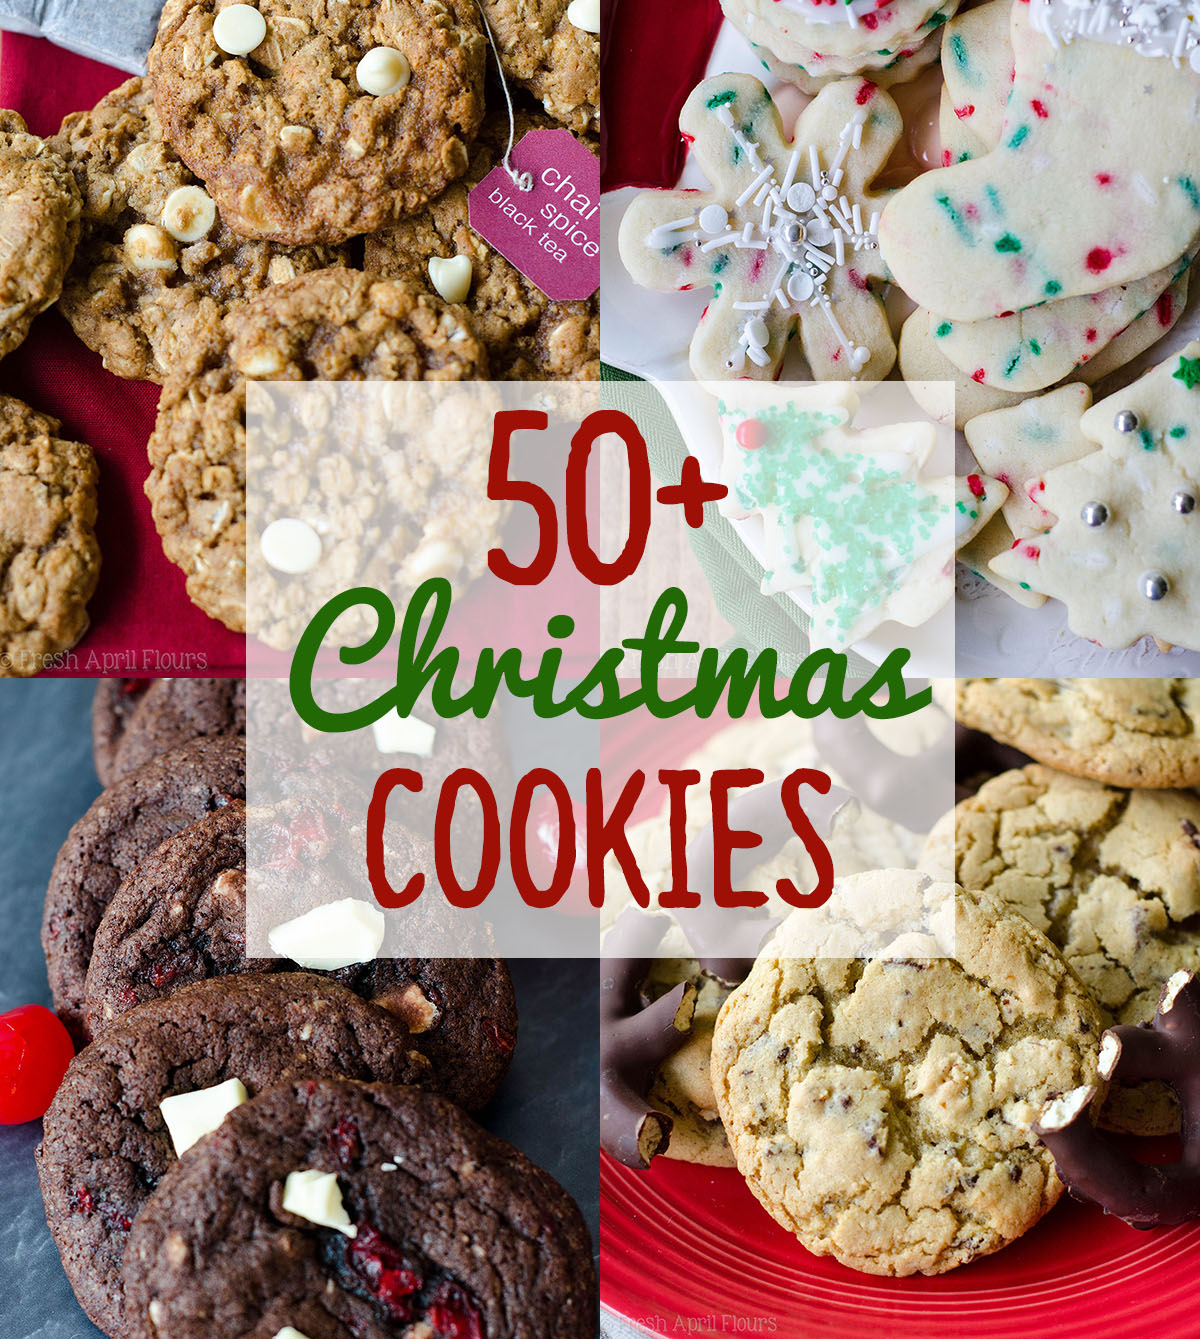 50+ Christmas Cookies from Fresh April Flours